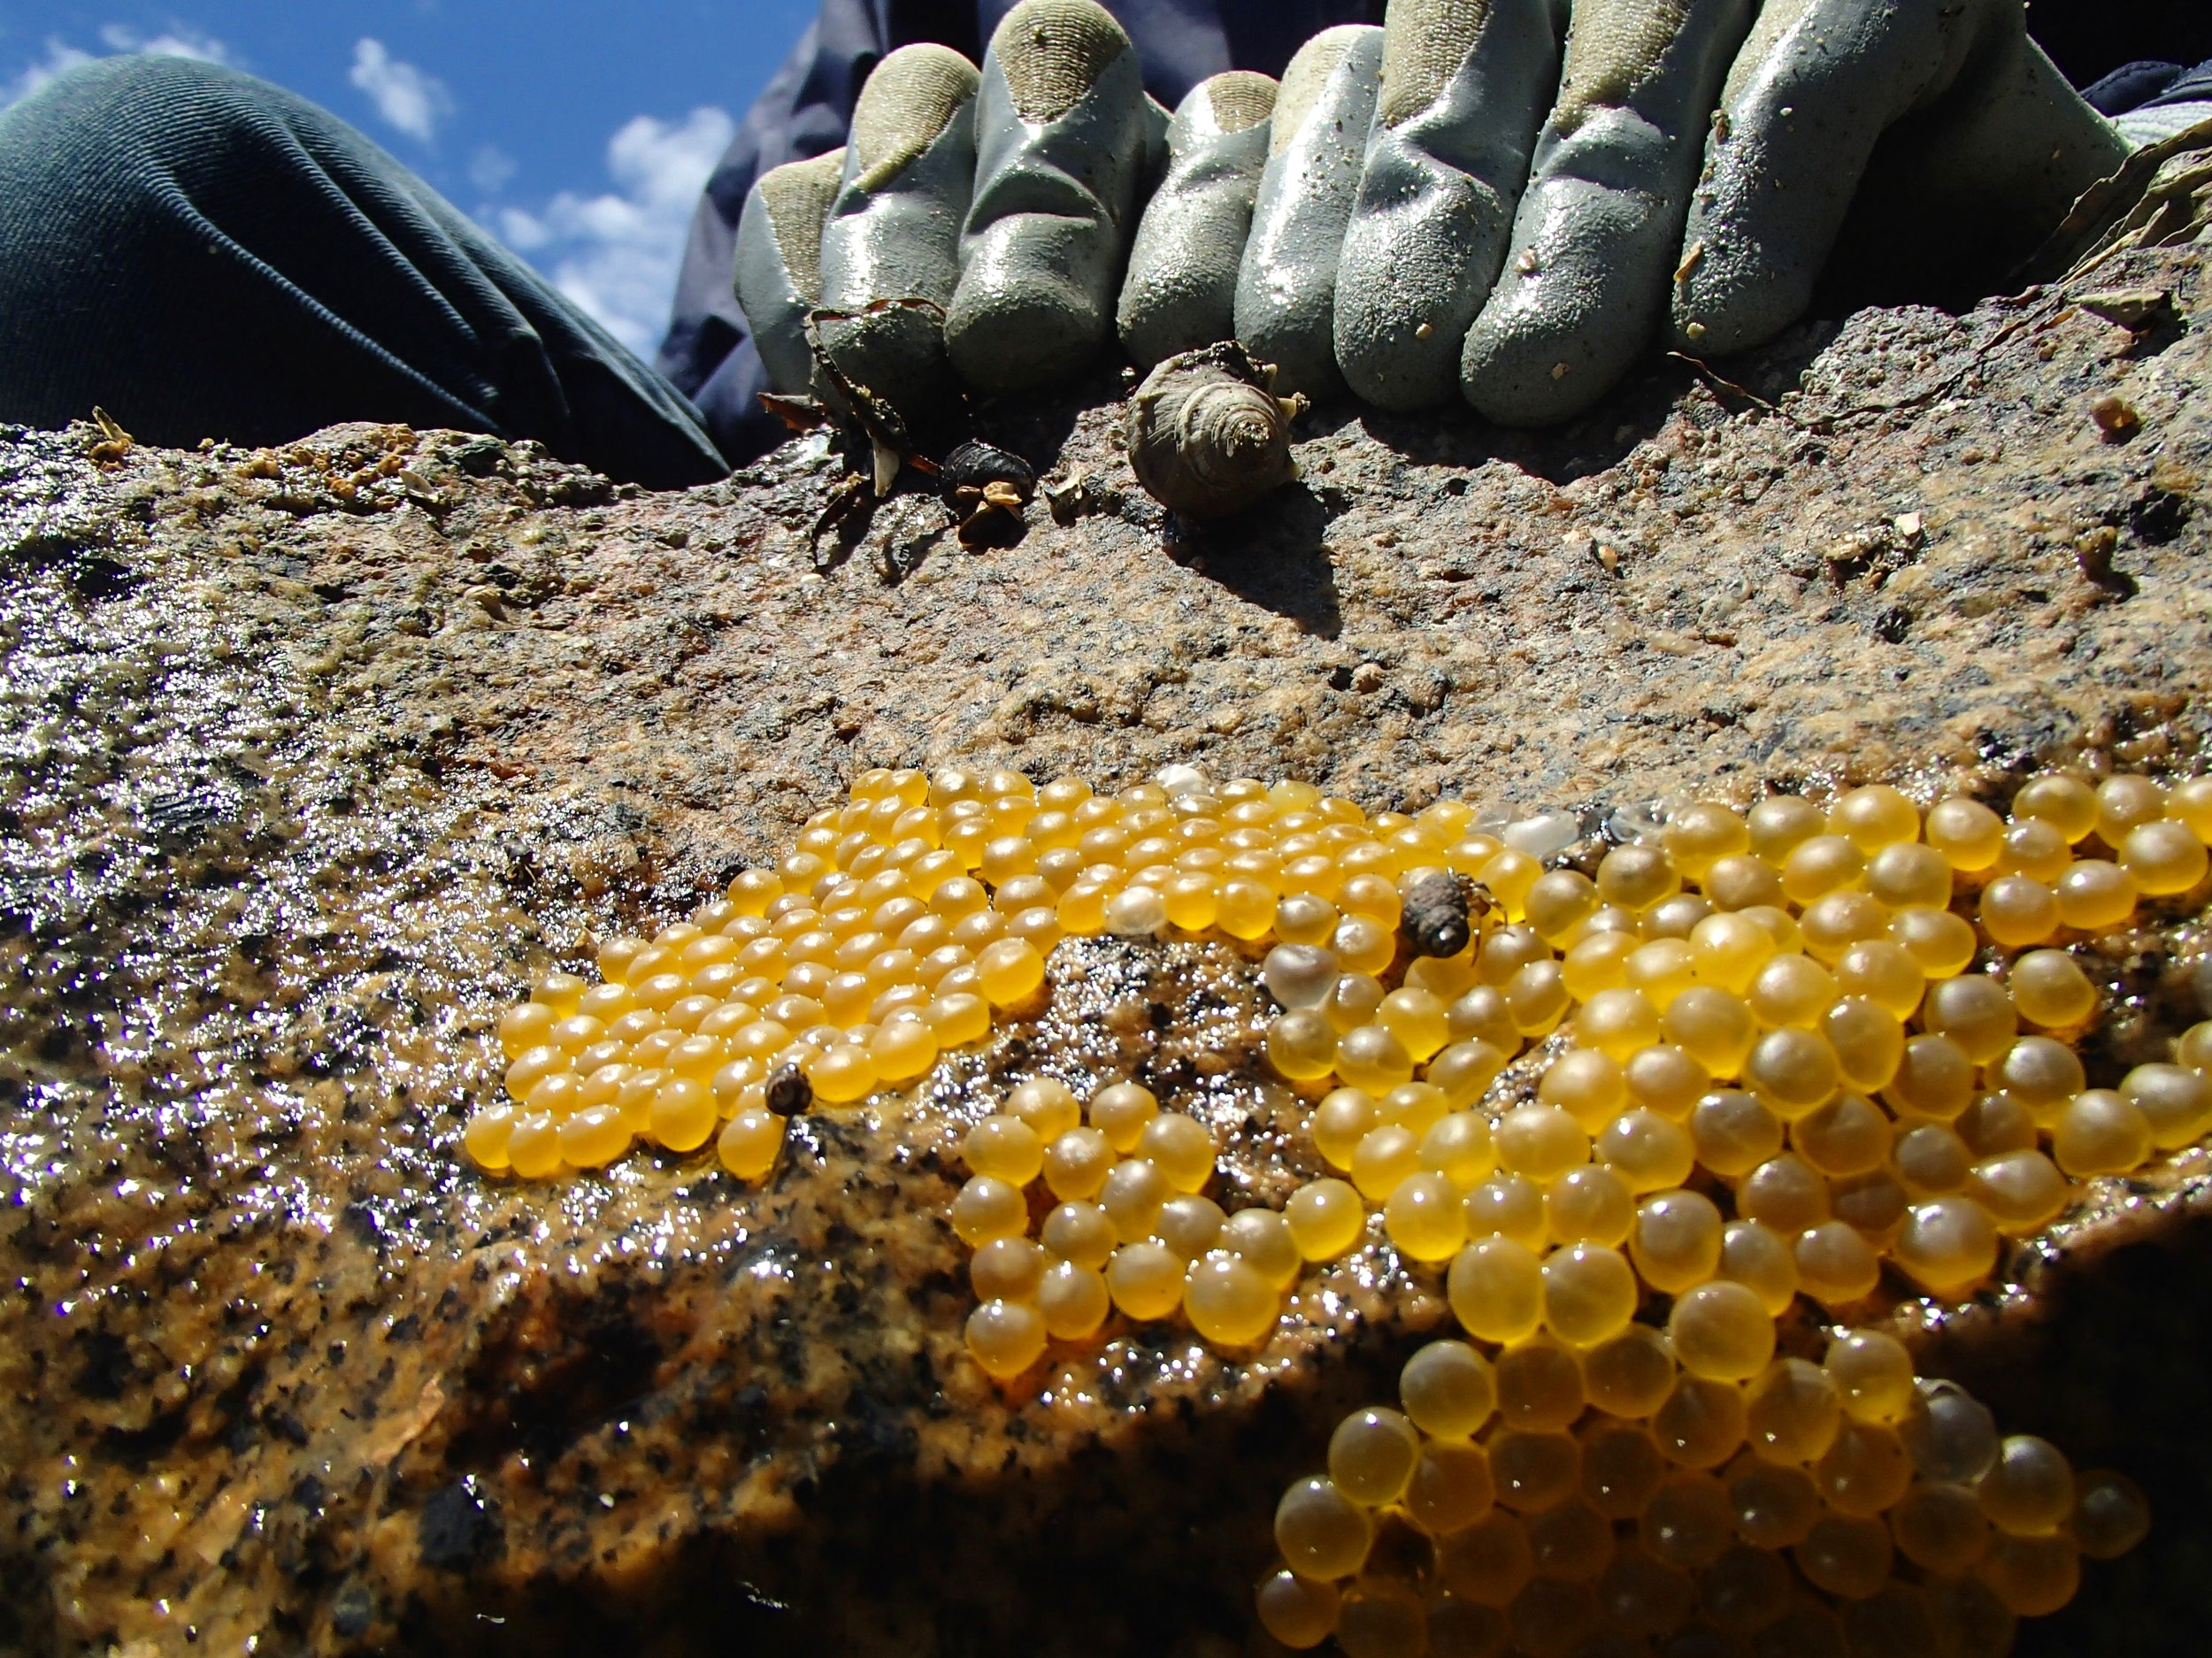 """Overturning an intertidal rock to uncover a plainfin midshipman nest with eggs. Photo taken from the """"fish's perspective""""."""